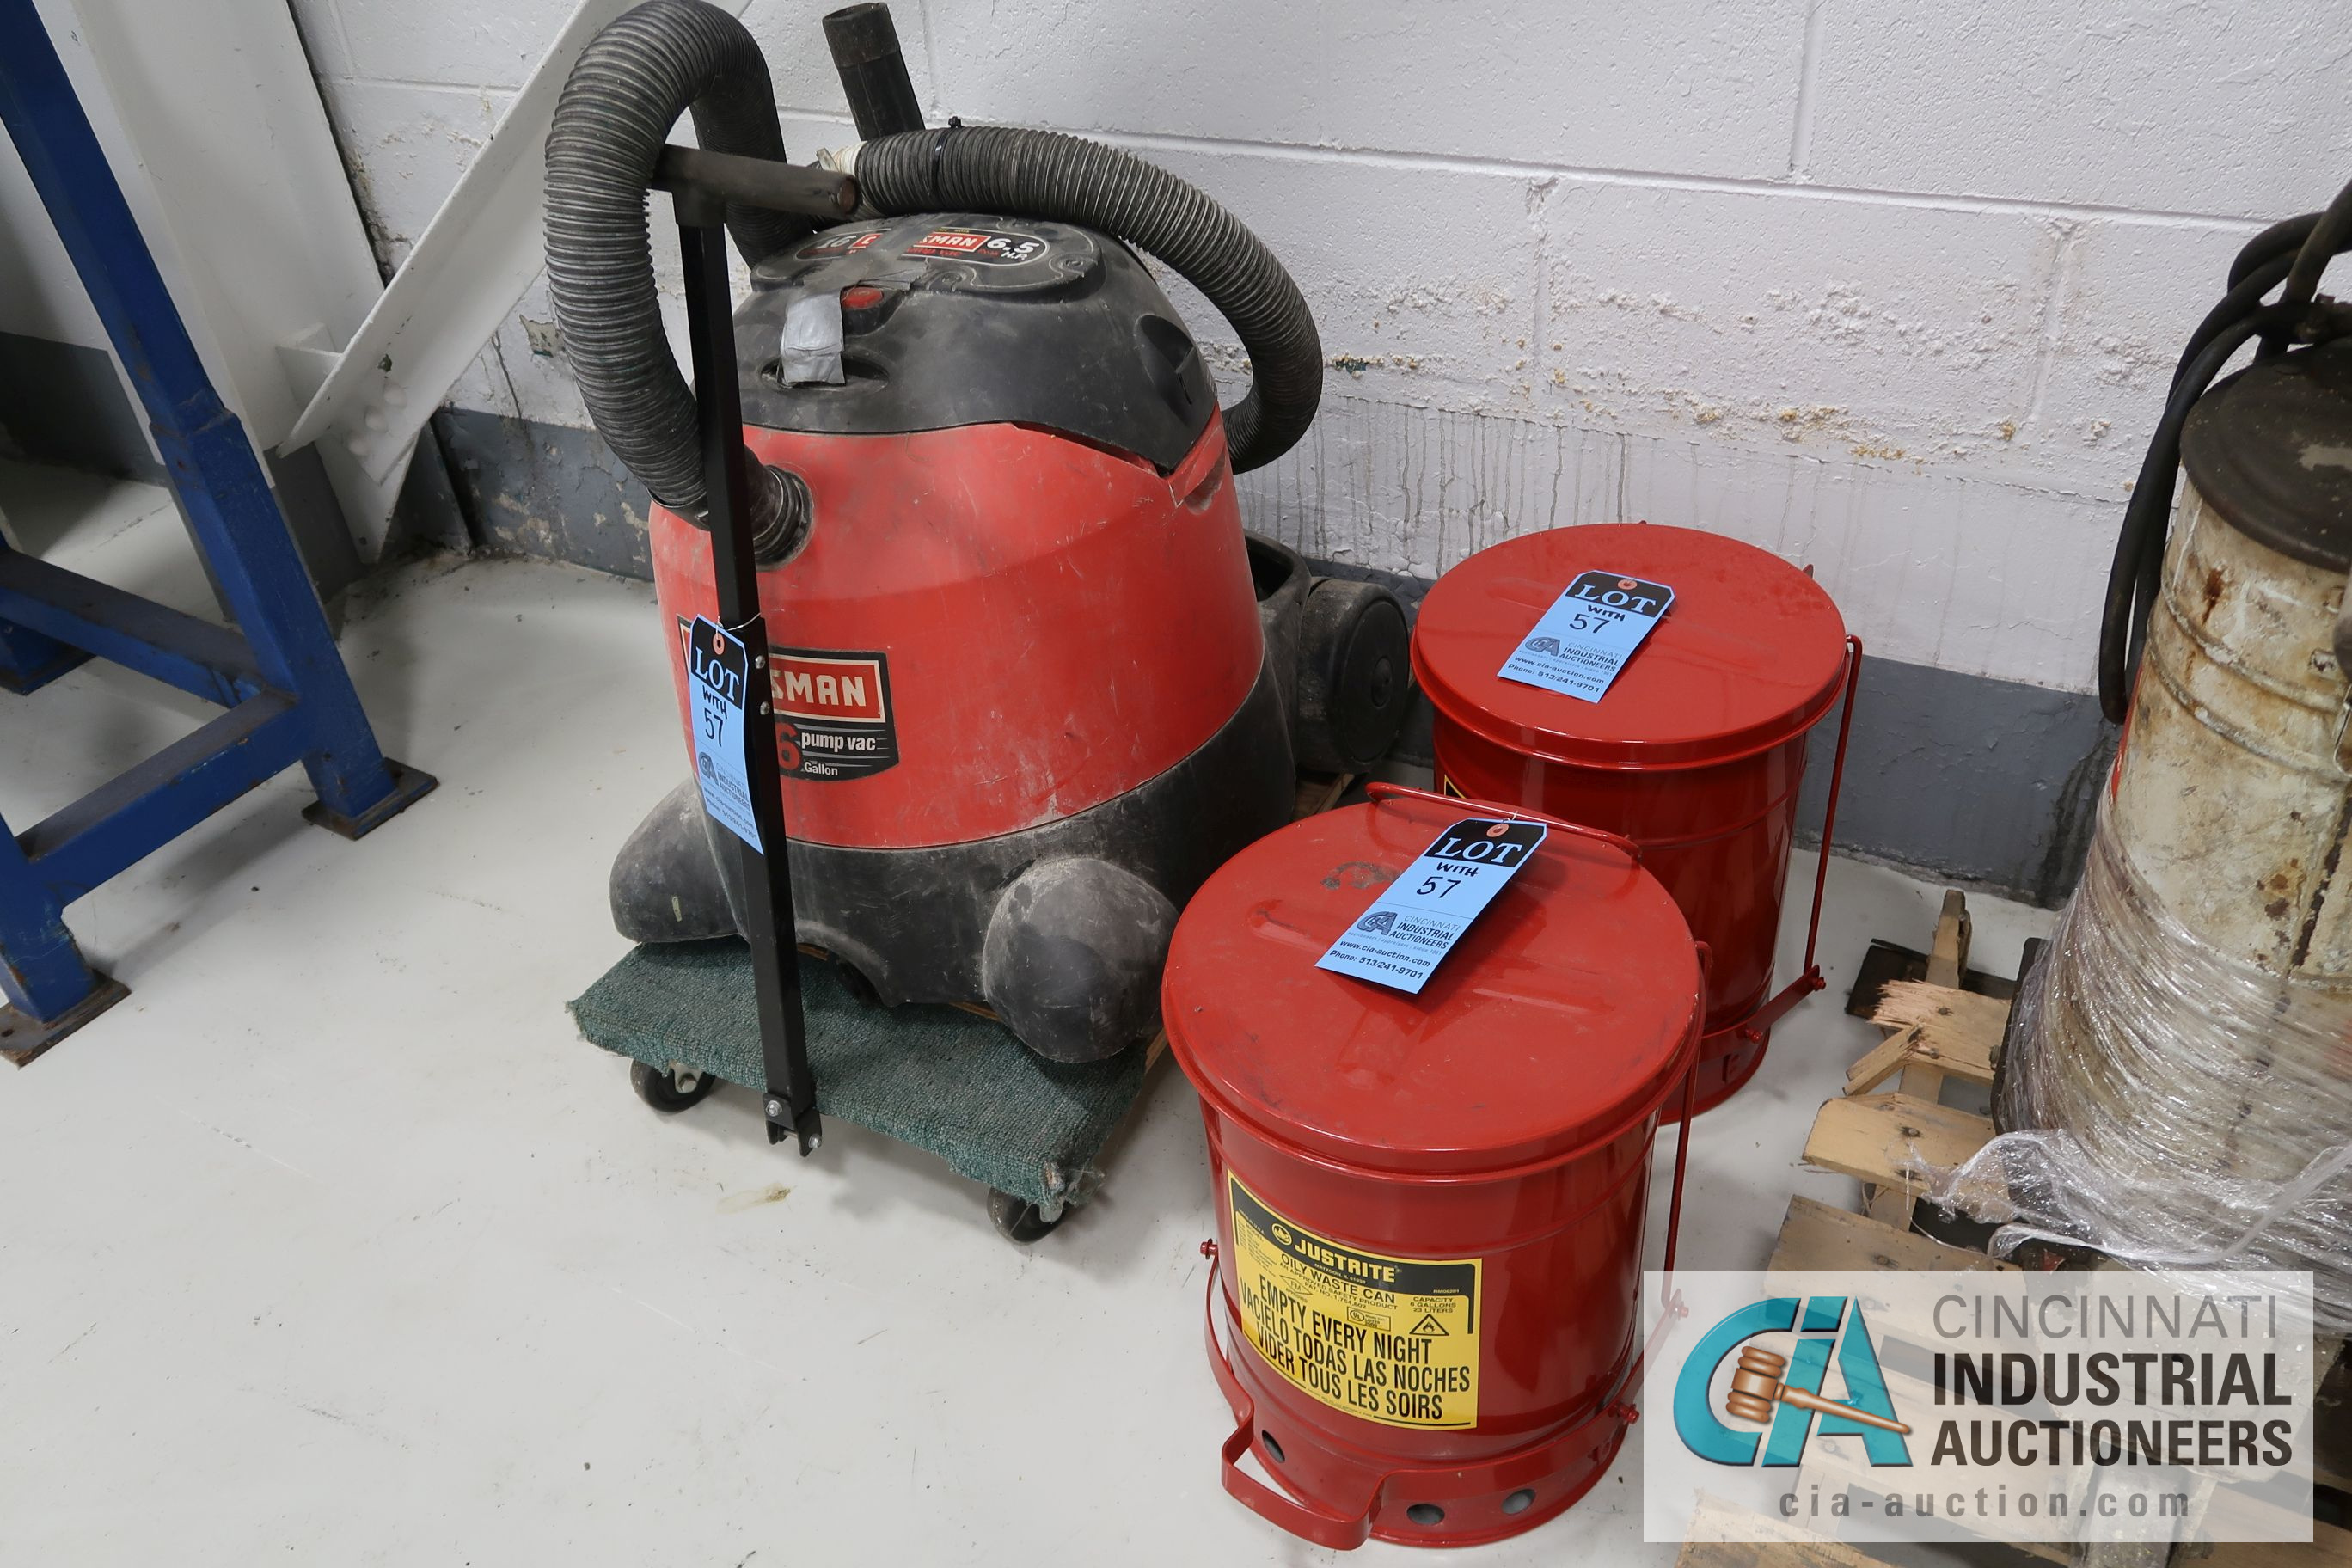 (LOT) MISCELLANEOUS - SAND BLAST POT, KETTLE, HYDRAULIC OIL PUMPS, JUSTRITE OILY WASTE CAN, - Image 4 of 4